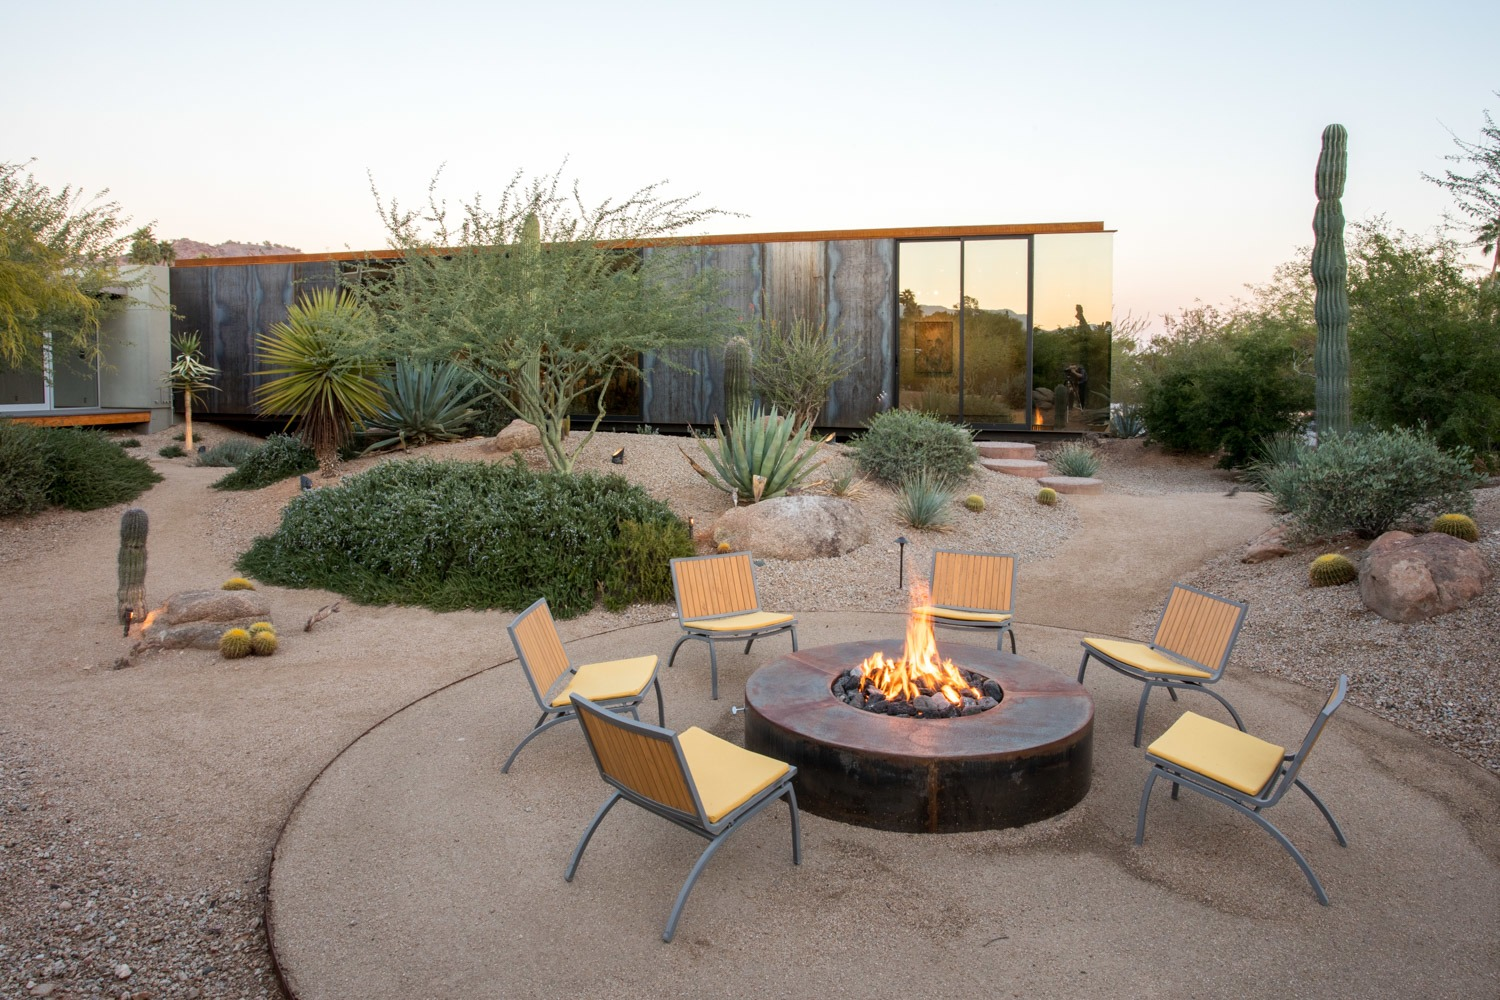 """The landscape was all in place there due to the existing courtyard,"" says Suchart. ""We largely designed and situated the project overall to be a good neighbor by embracing what was there and minimally disturbing the natural desert and, in particular, the wash."""